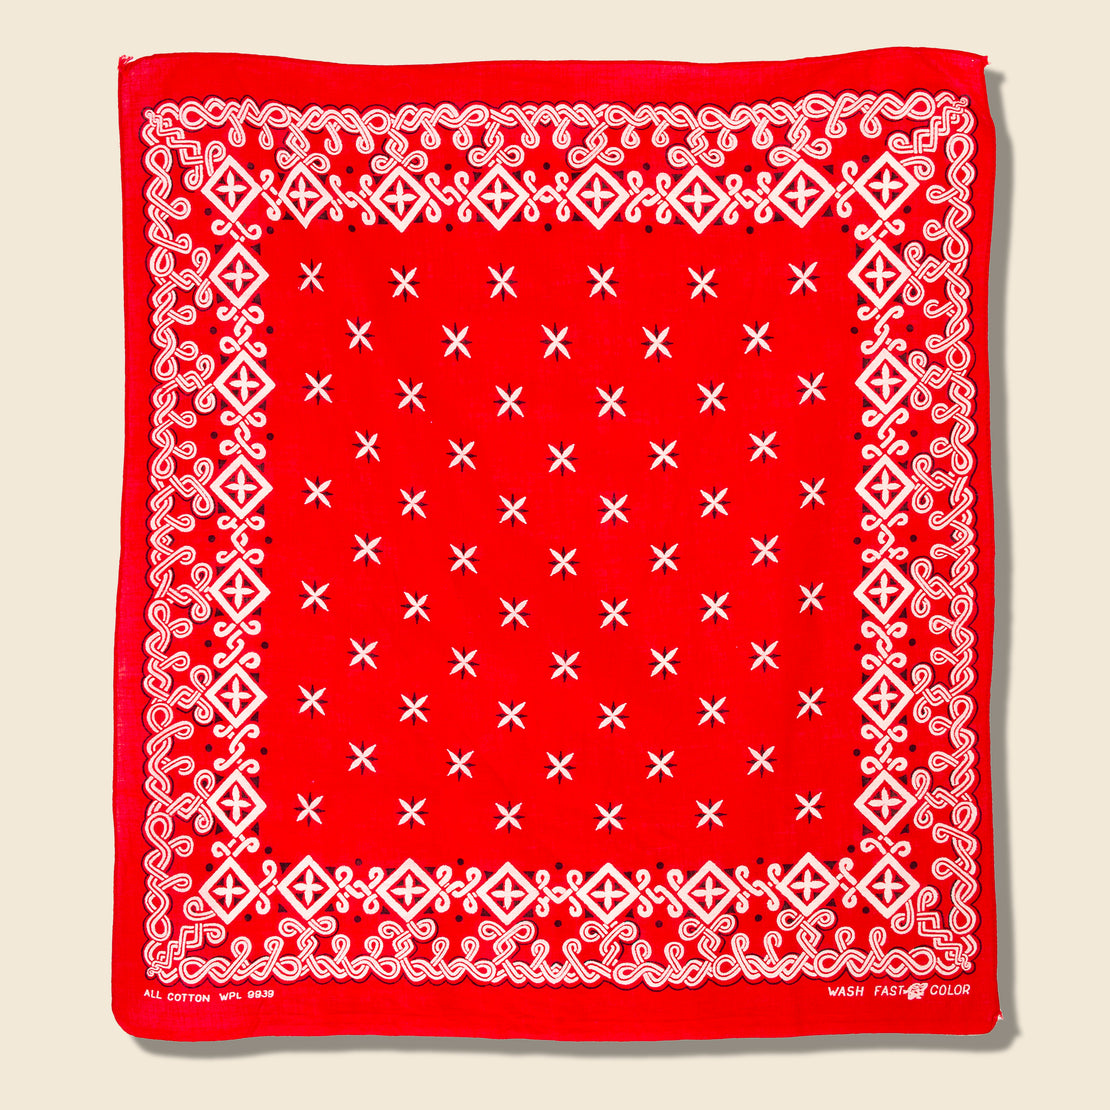 Vintage Fastcolor Cotton Celtic Knot Bandana - Red/White/Black